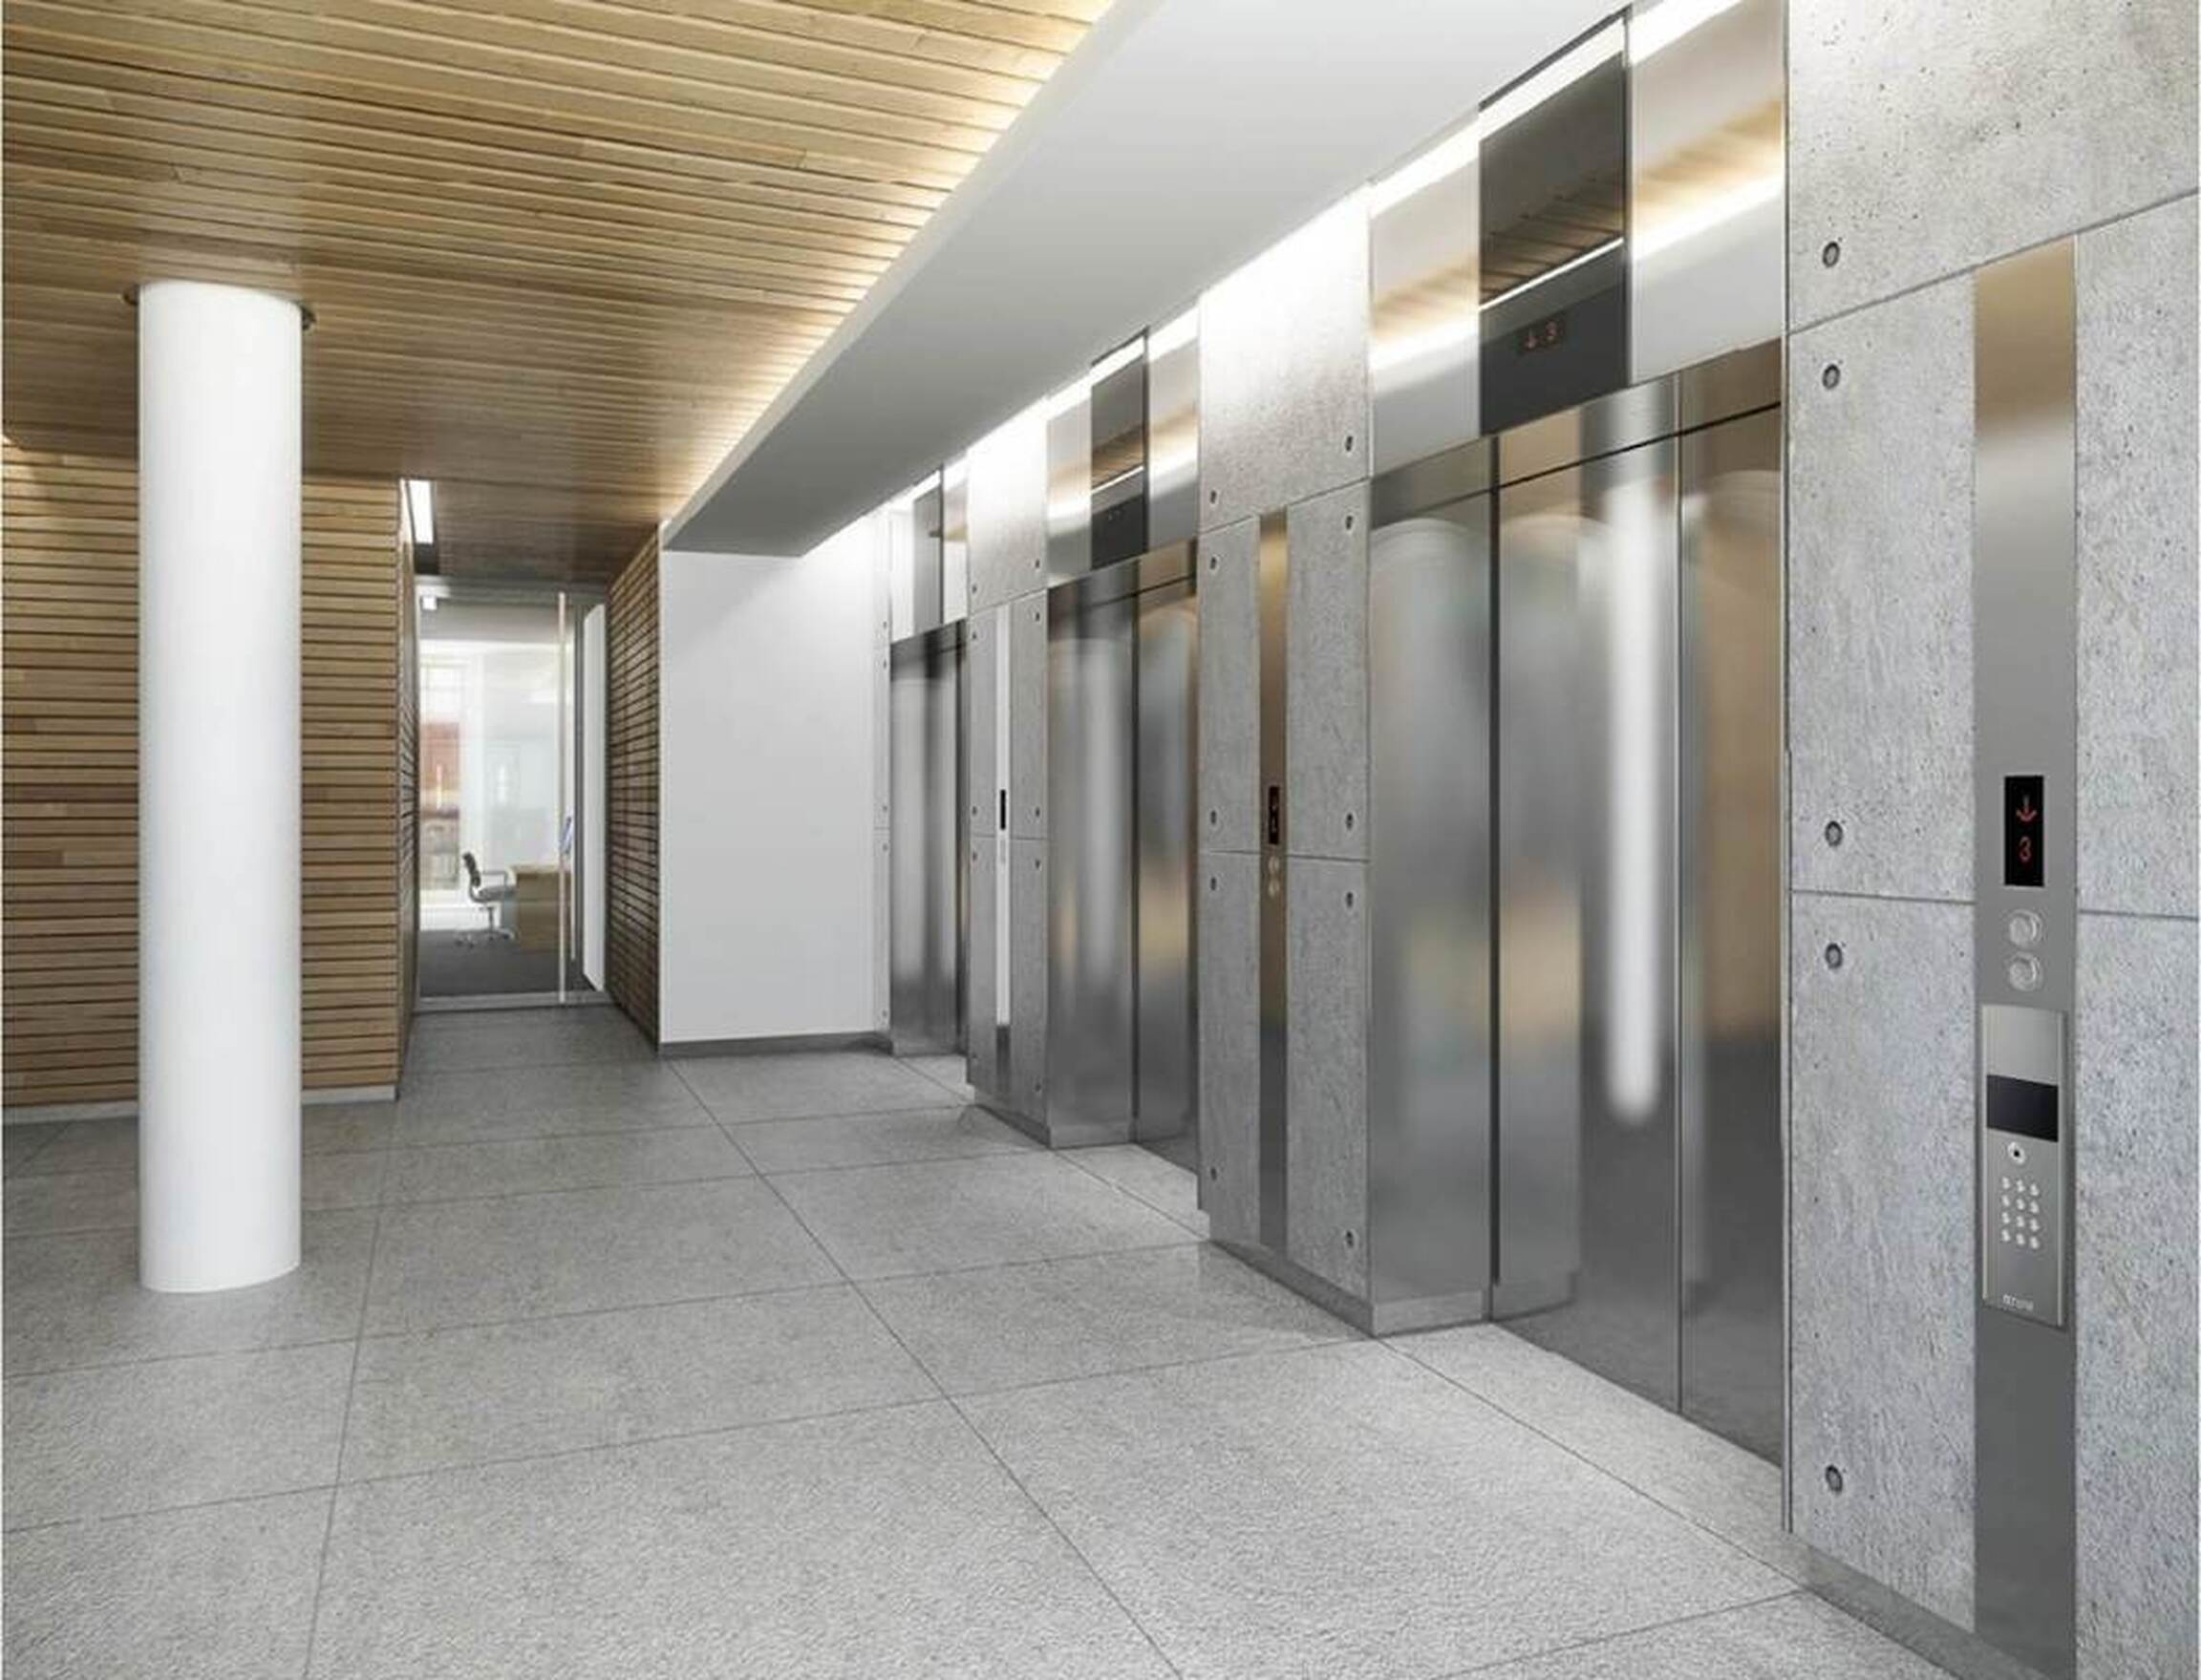 Telephony Interphone Lift Lobby | Commercial Building Intercom | Office Intercom Systems